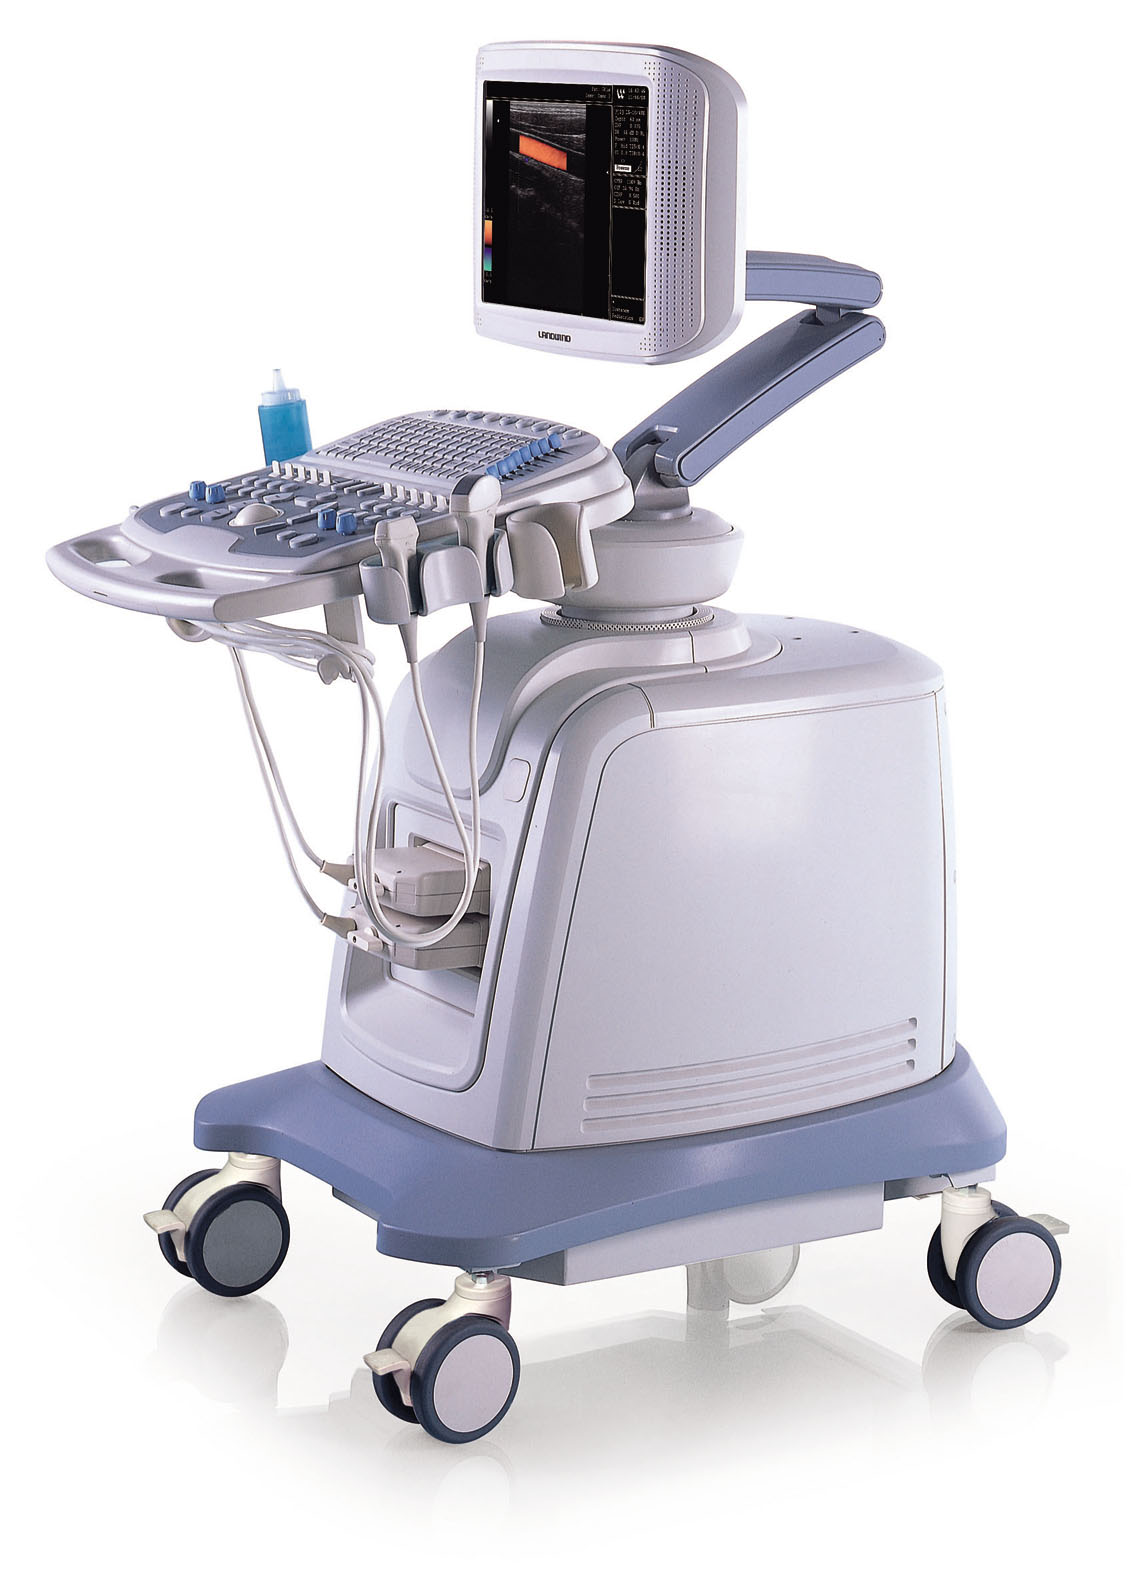 We supply quality medical products from the leading manufacturers such